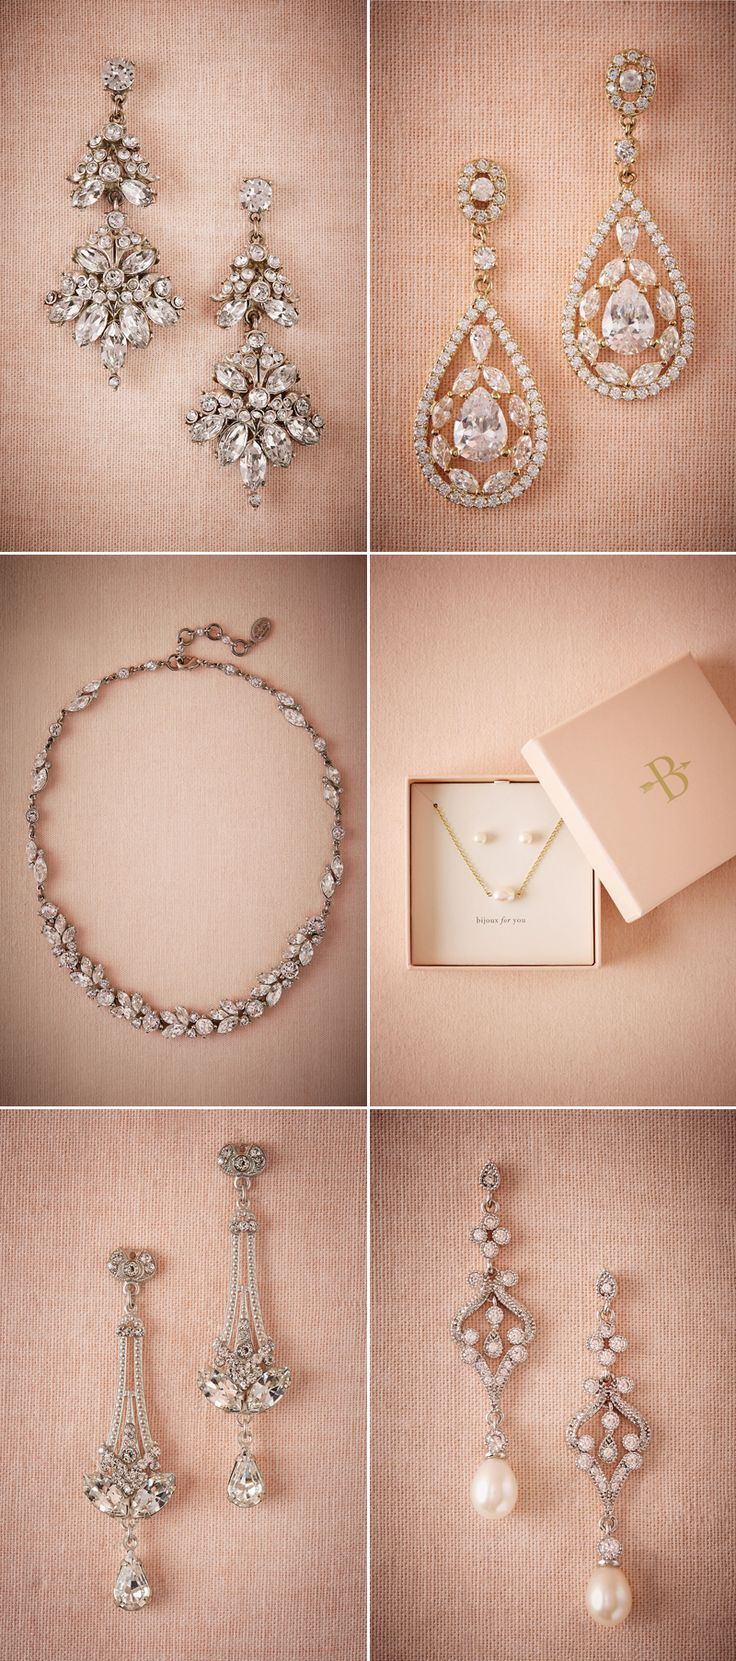 Time to Accessorize! Beautiful Bridal Jewelry Ideas for Every Style!